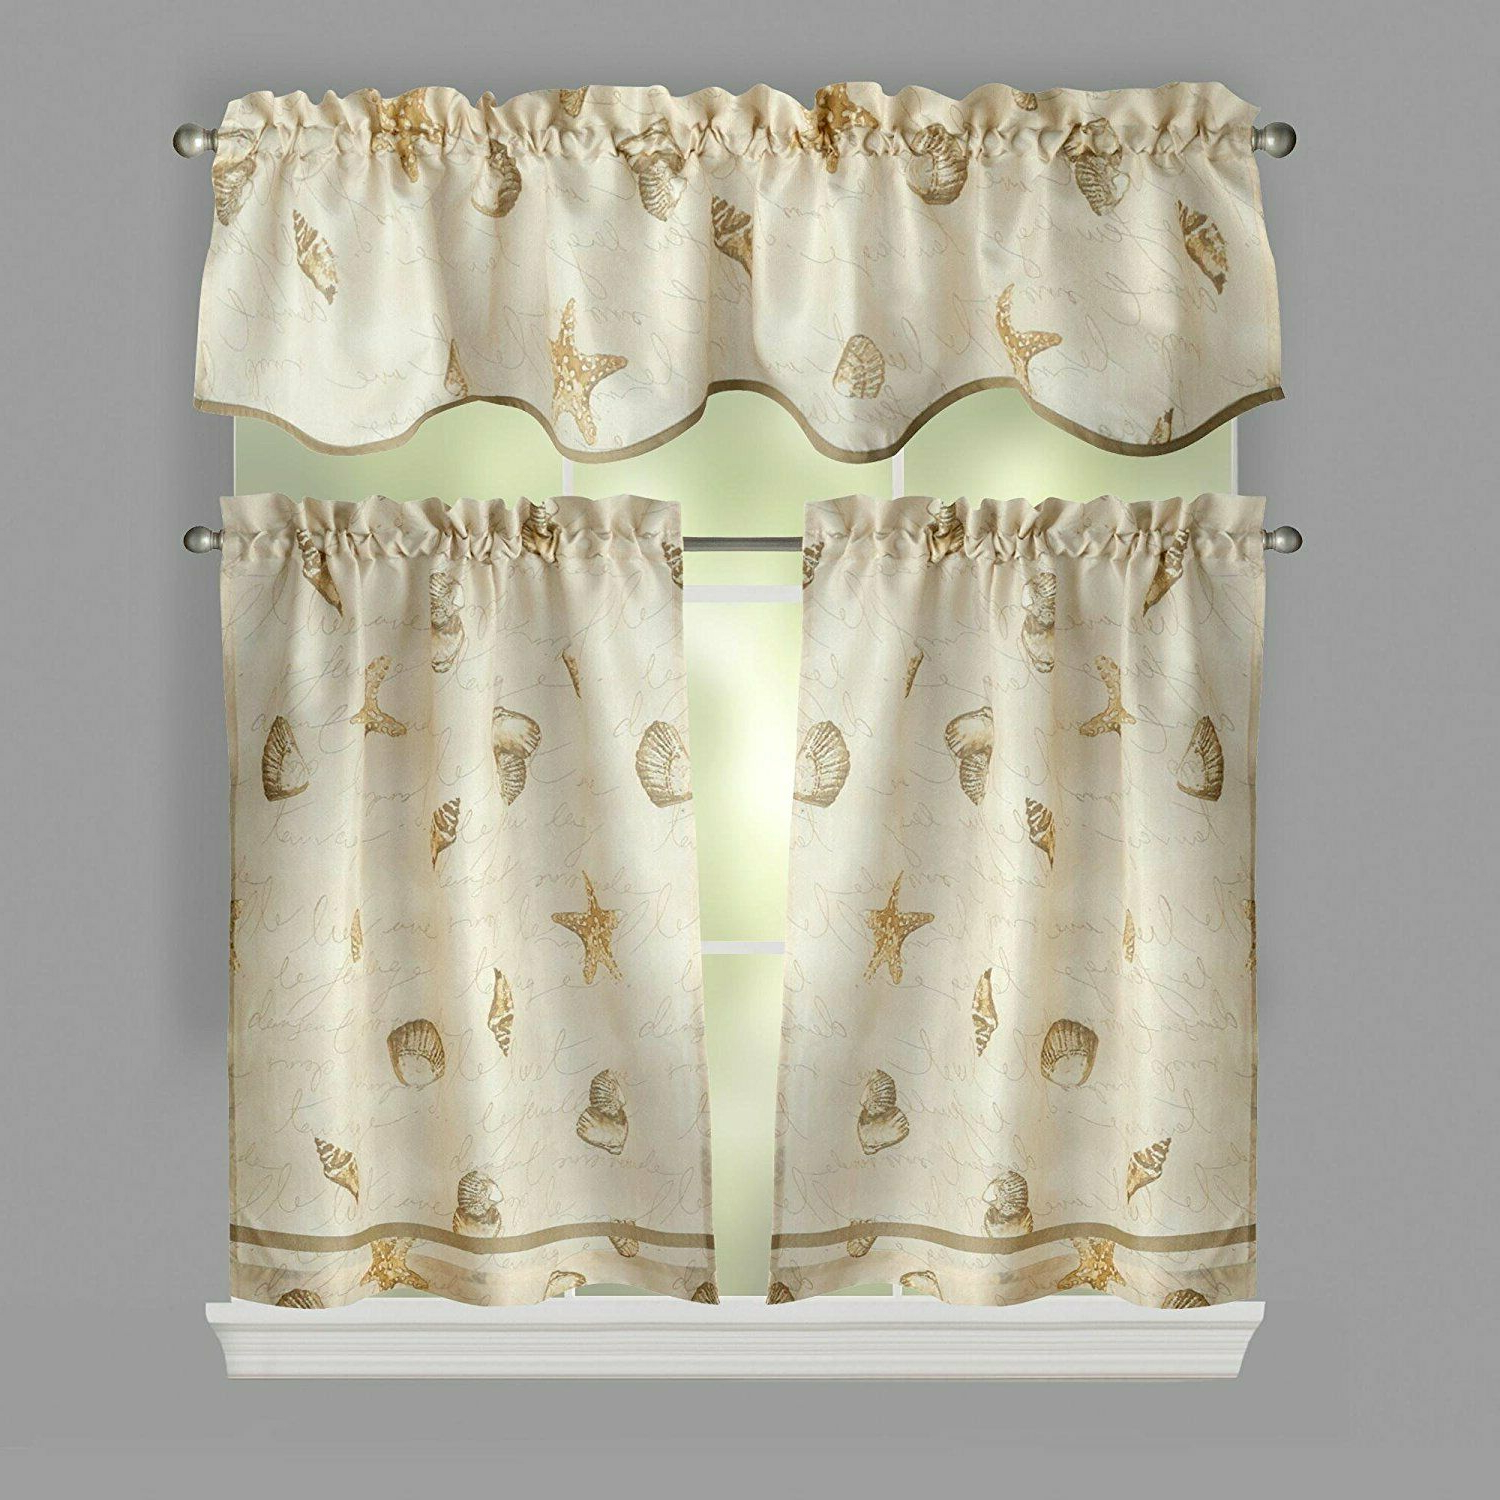 Coastal Tier And Valance Window Curtain Sets For Fashionable Ellery Homestyles 36 Inch Tiers And Valance Curtain Set Shells Seashells (View 6 of 20)